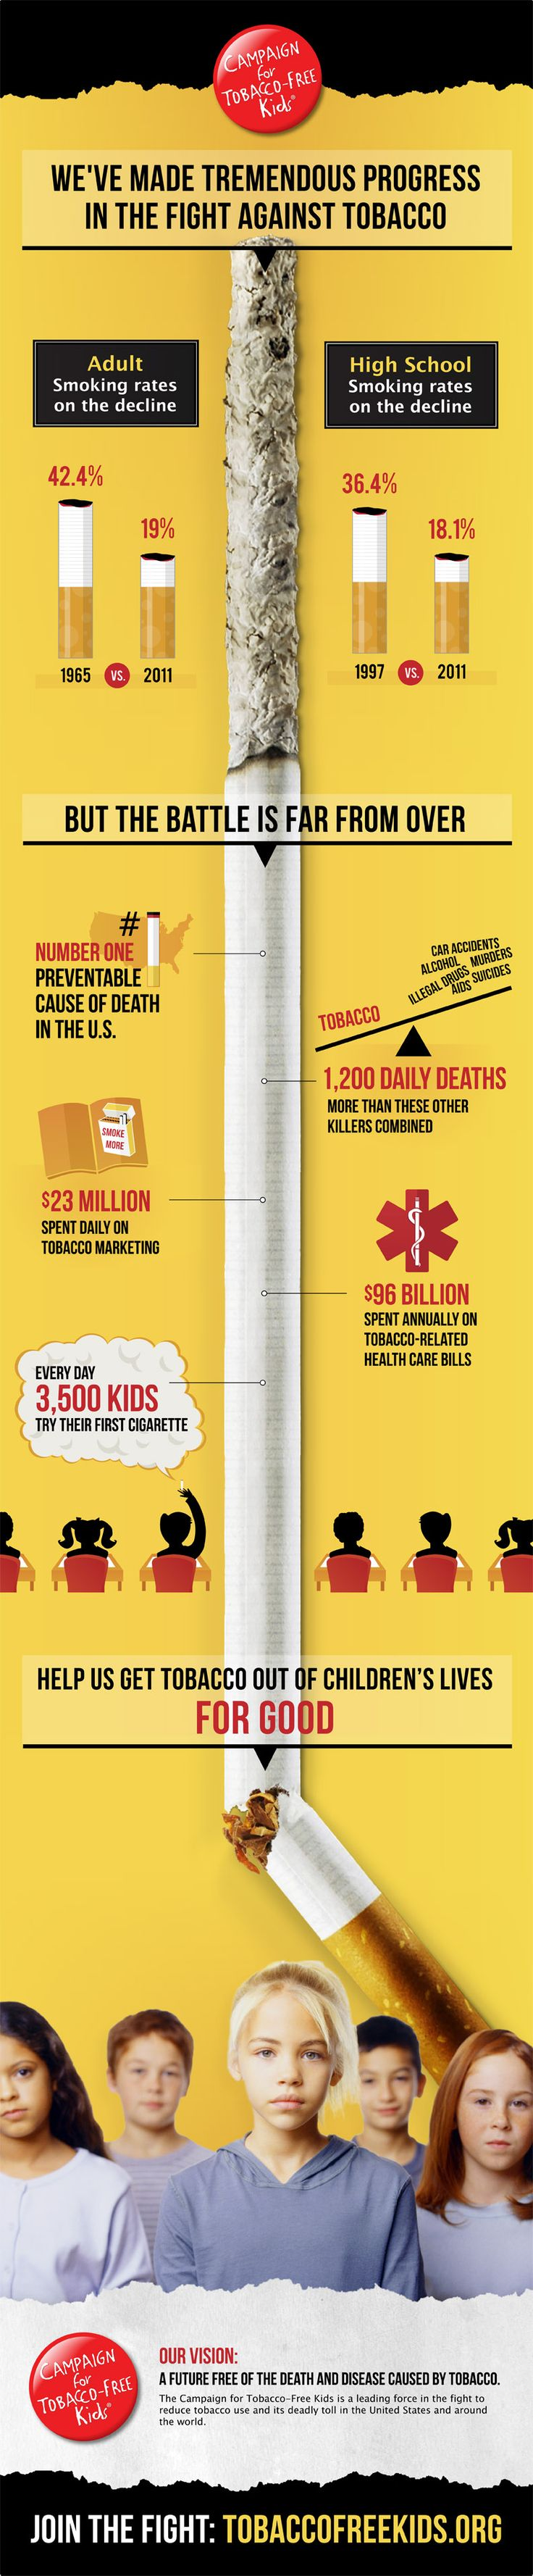 Winning the Fight / Campaign for Tobacco-Free Kids #kids #health #smoking